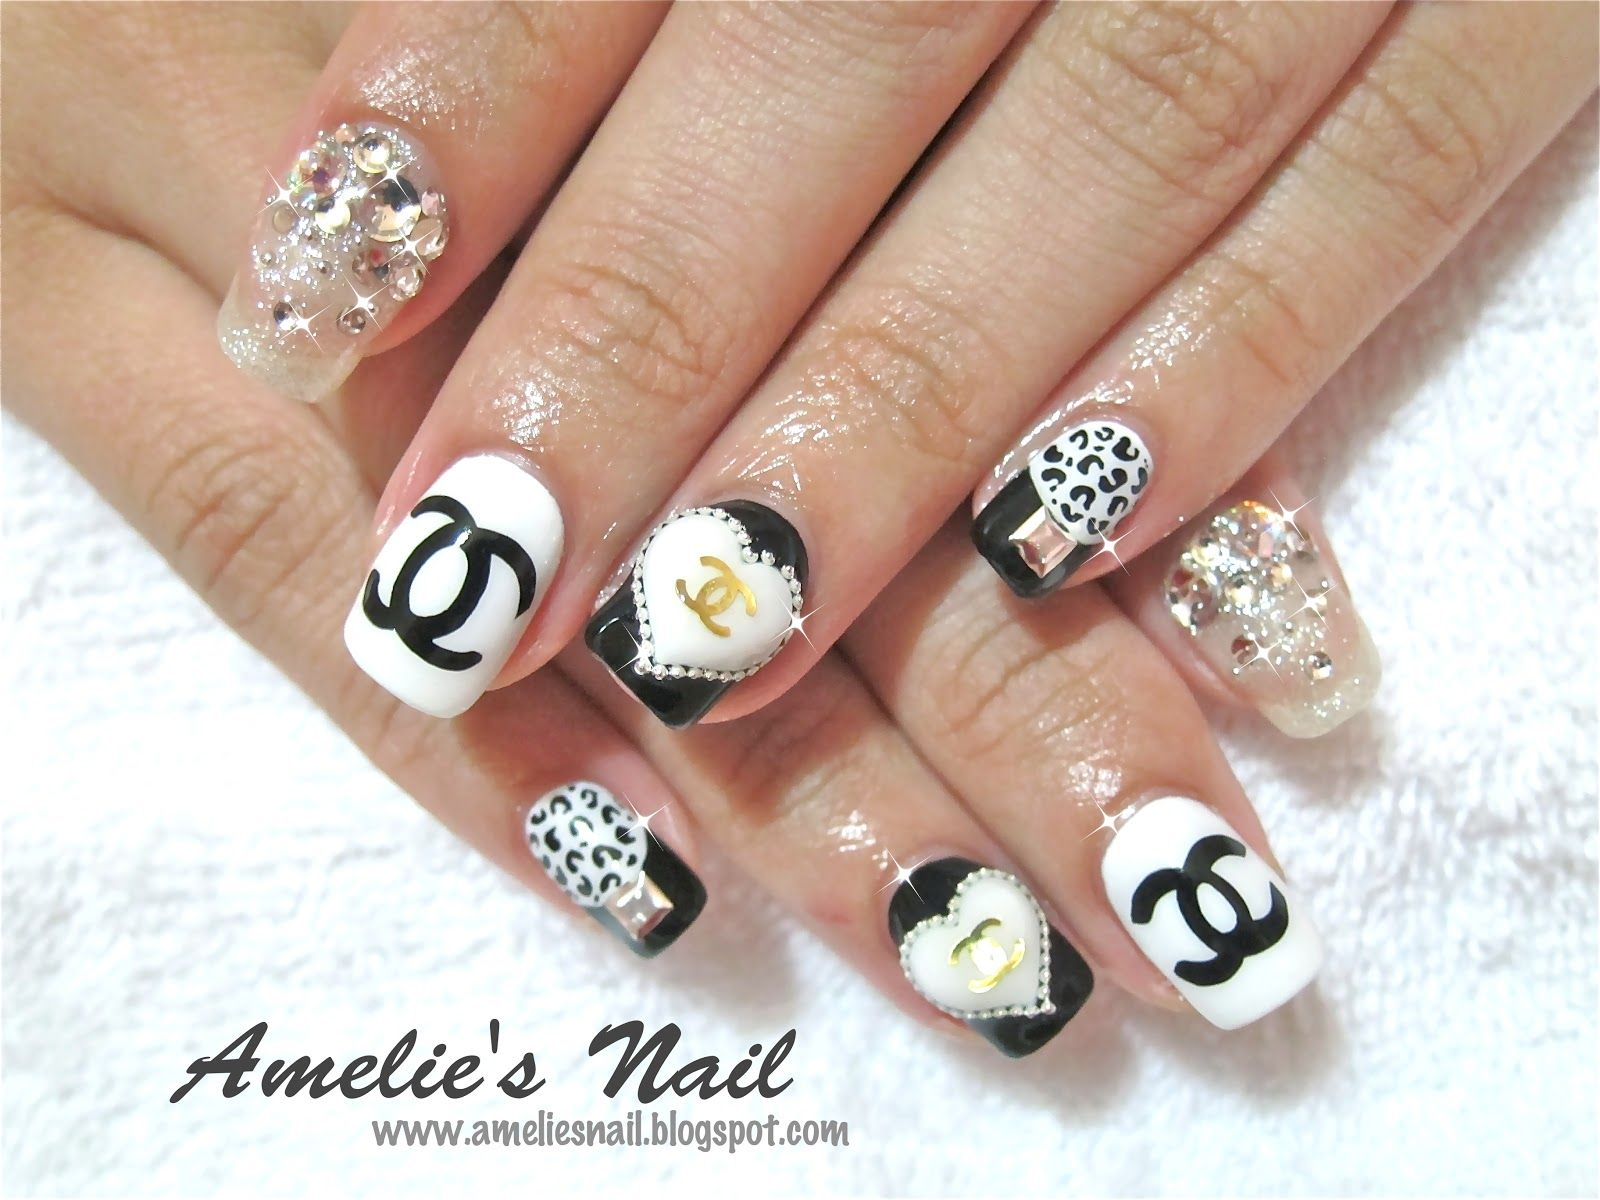 Chanel nail designs google search my girly side pinterest chanel nail designs google search prinsesfo Image collections